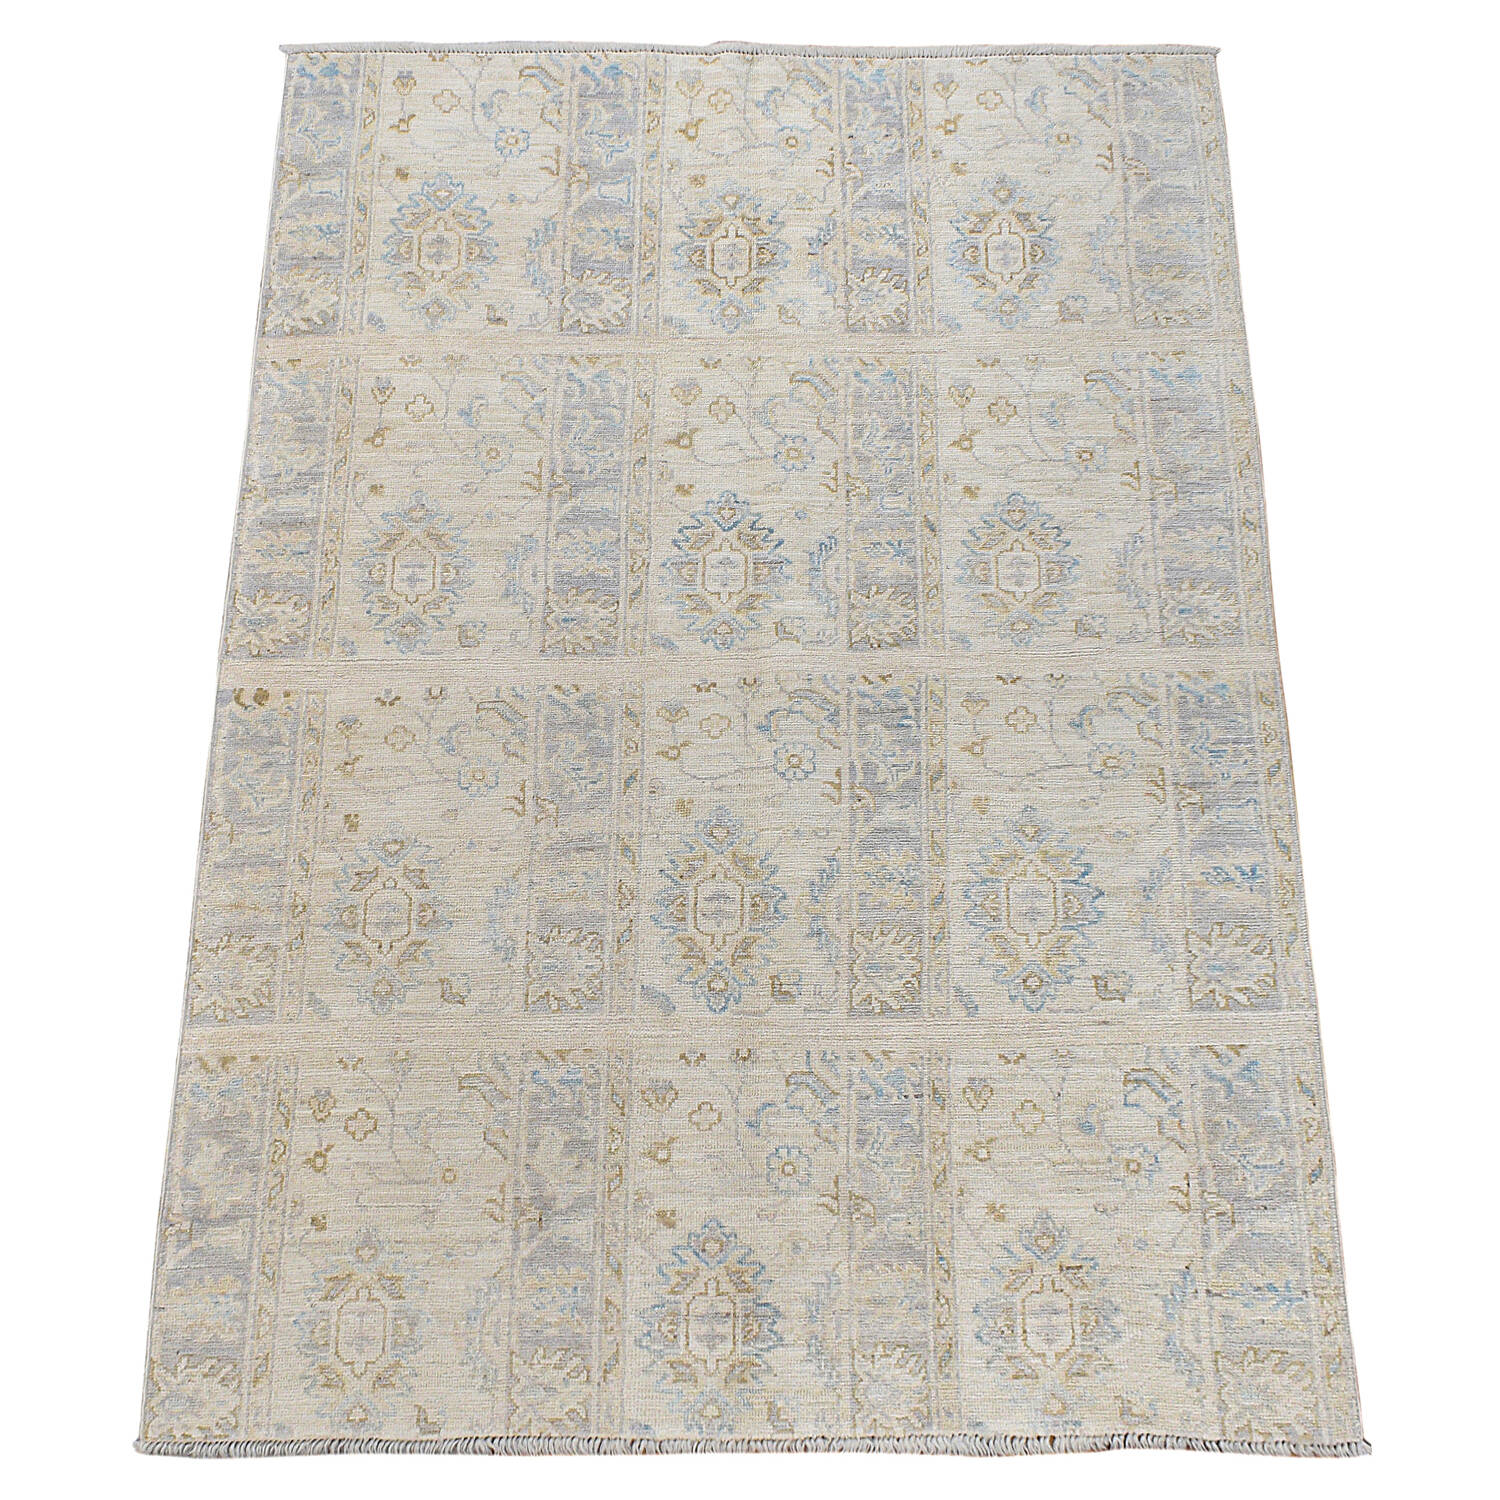 Muted Floral Oushak Turkish Area Rug 5x6 image 2